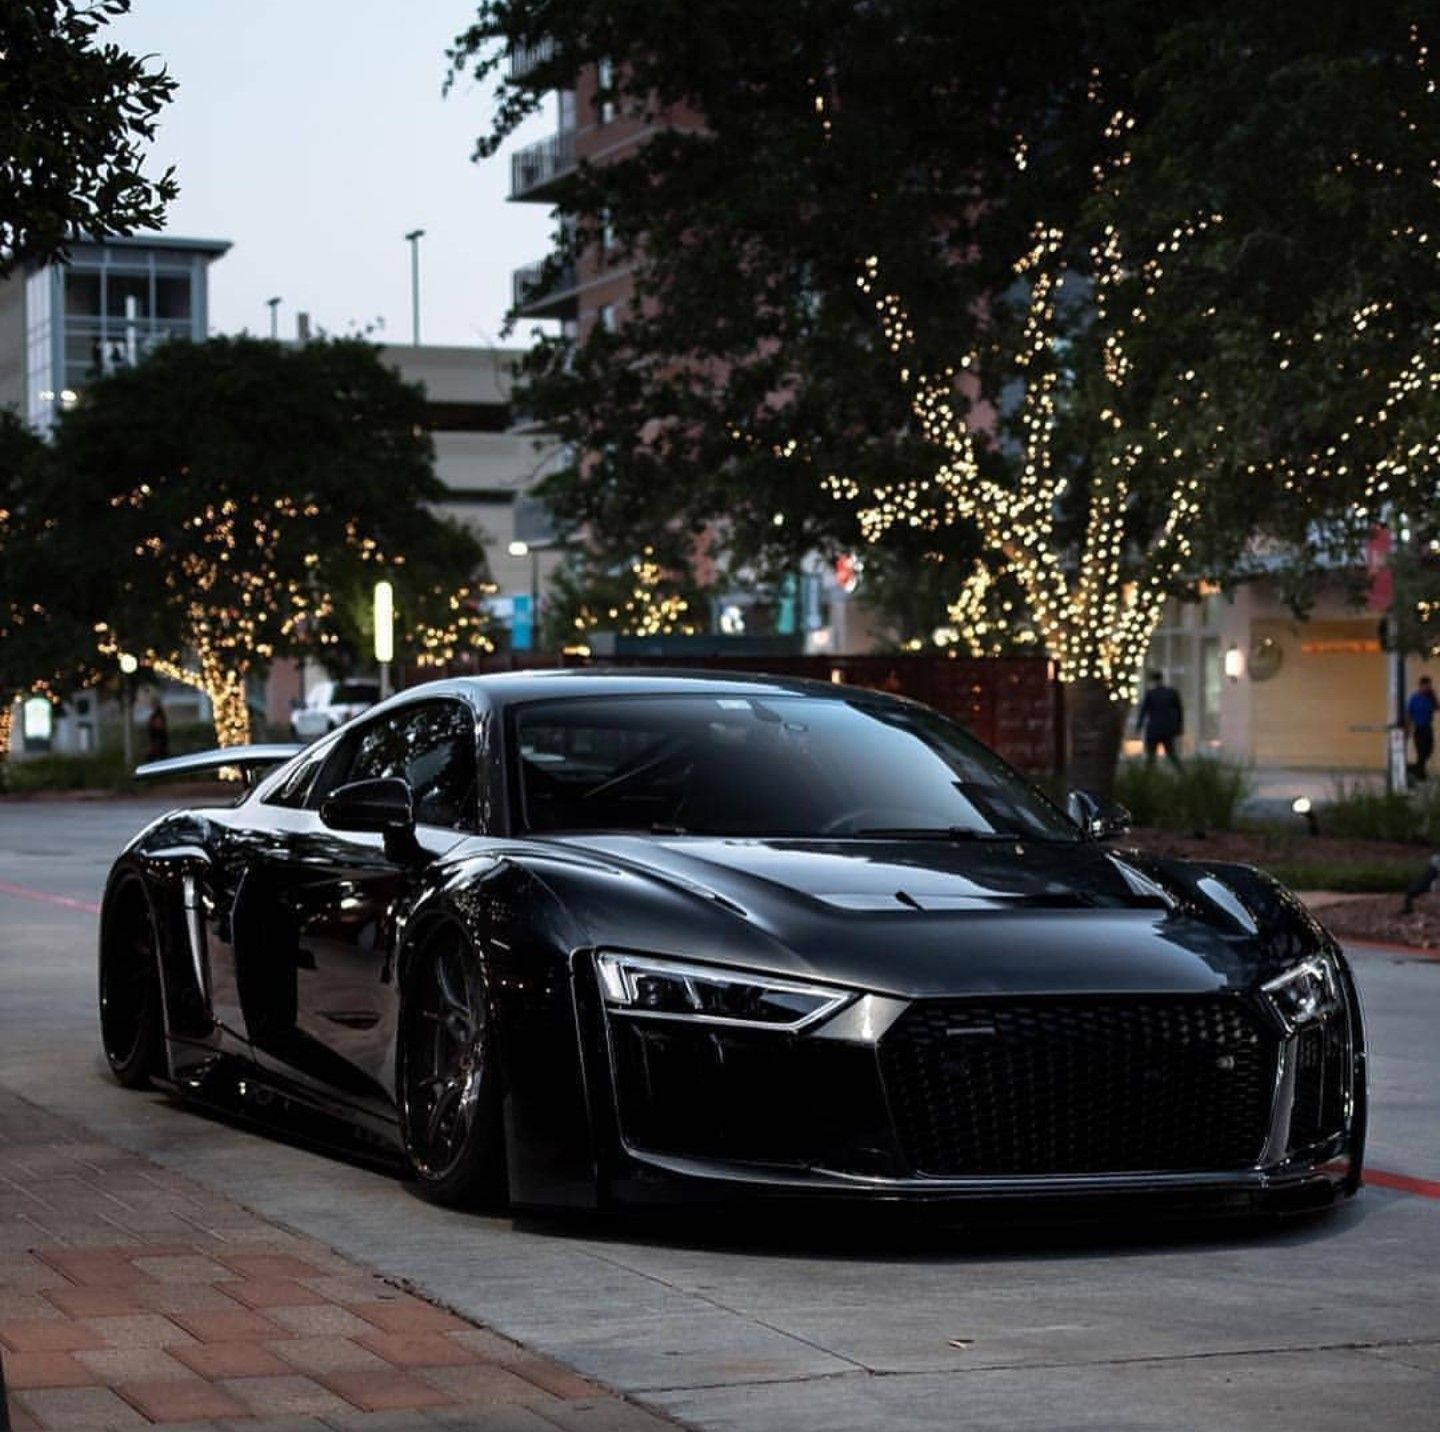 Bad-ass Audi R8 | Bad-ass Rides | Best Luxury Cars, Luxury Cars, Audi R8